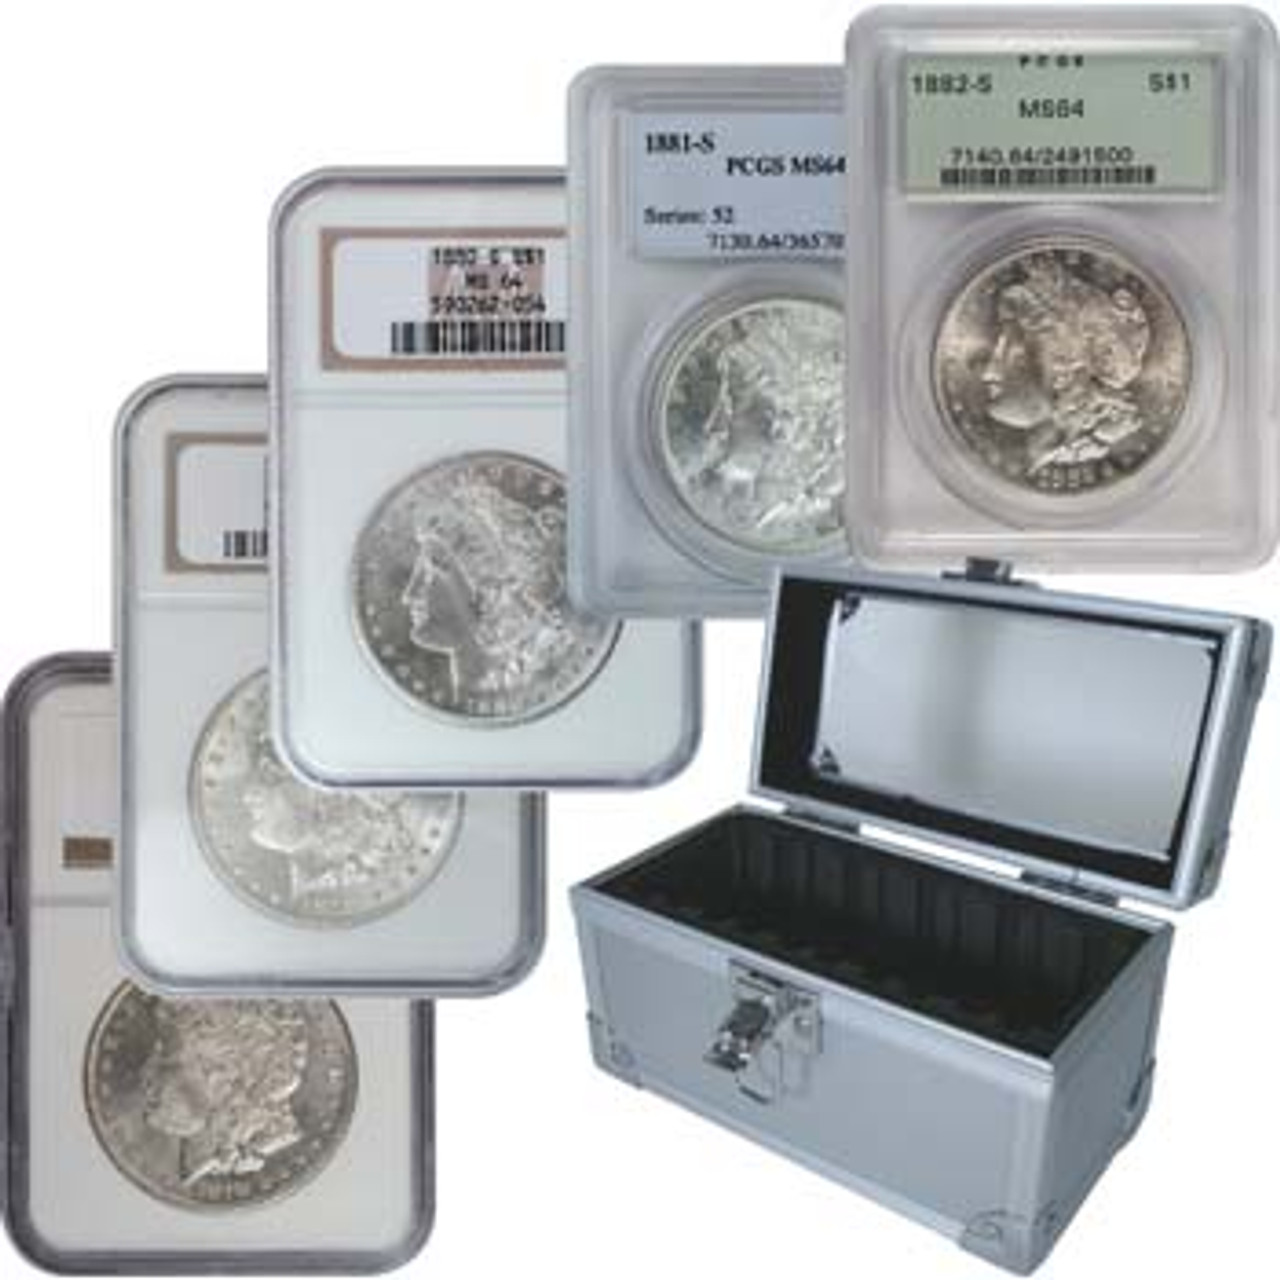 U.S. 1878-1882 Morgan Silver Dollar 5 Coin S-Mint Set Certified MS-64 with FREE Slab Holder